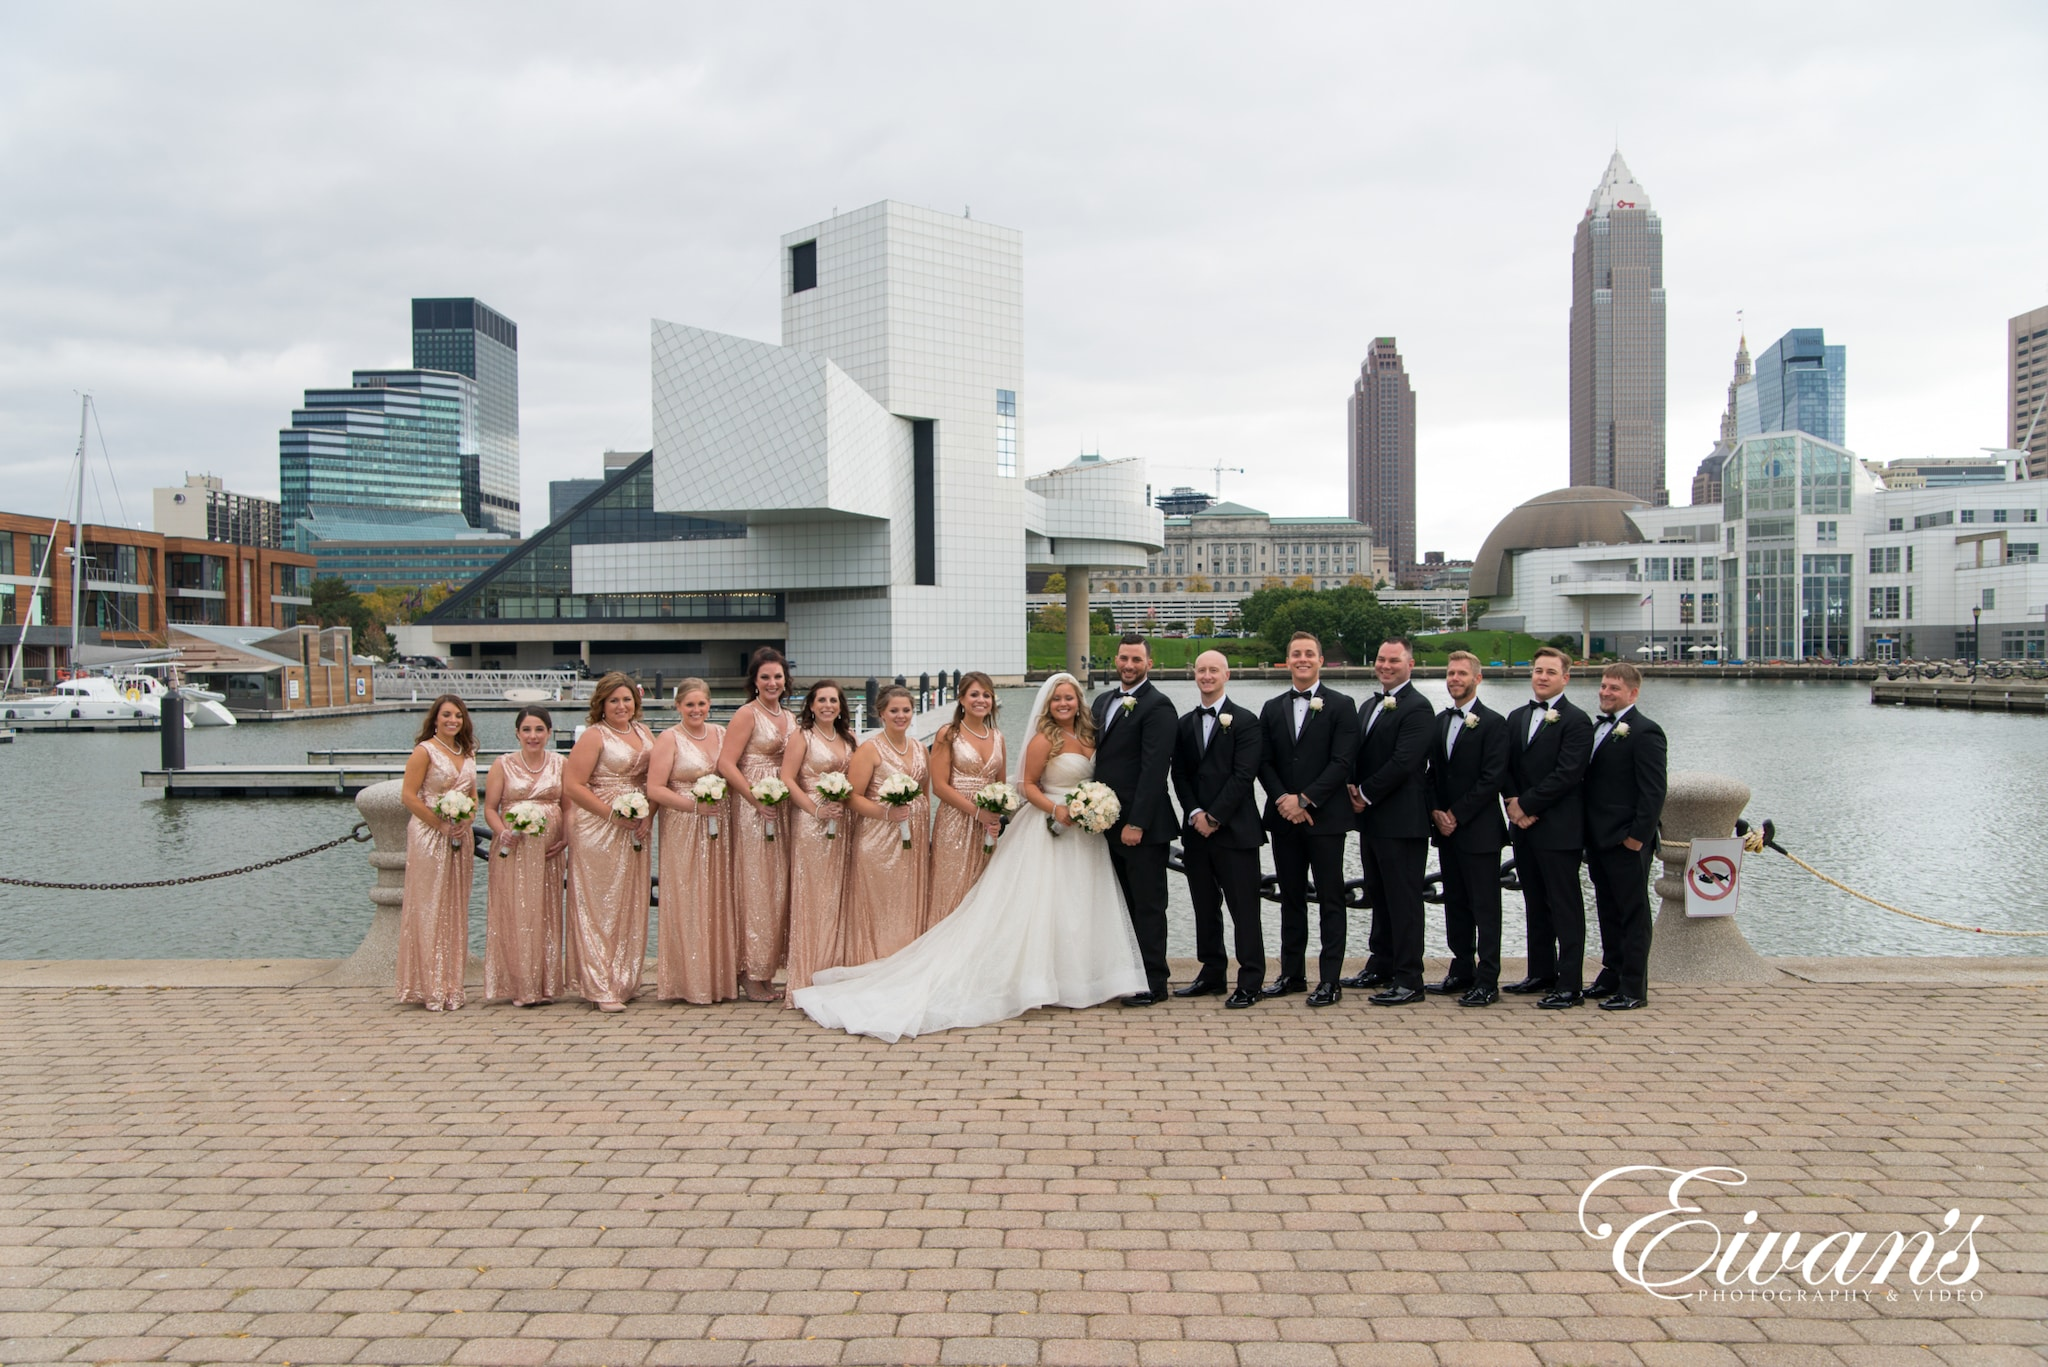 image of a wedding party lined up in the city